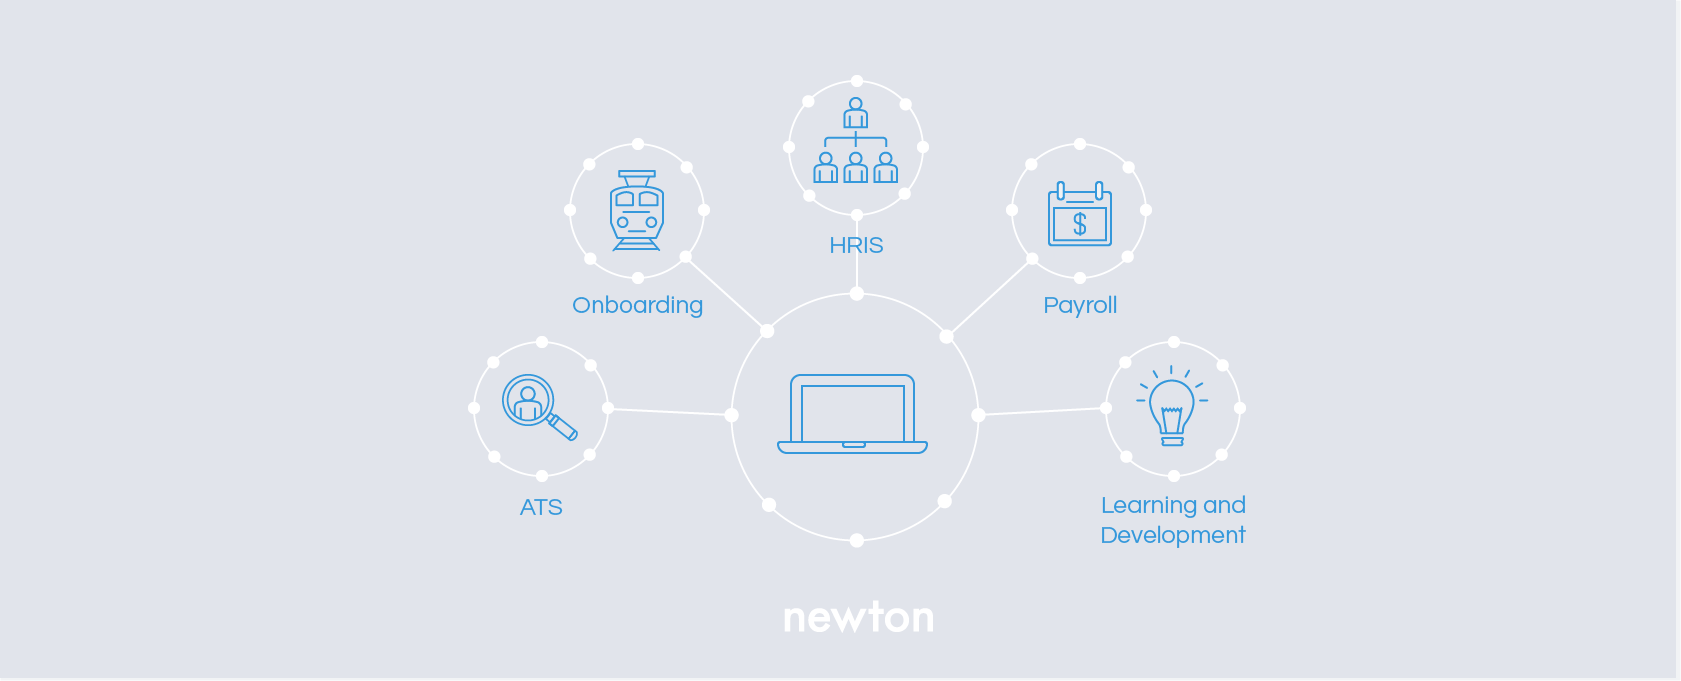 This image shows all of the systems that make up a talent management suite: an ATS, an Onboarding System, an HRIS, a Payroll System, and a Learning and Development System.